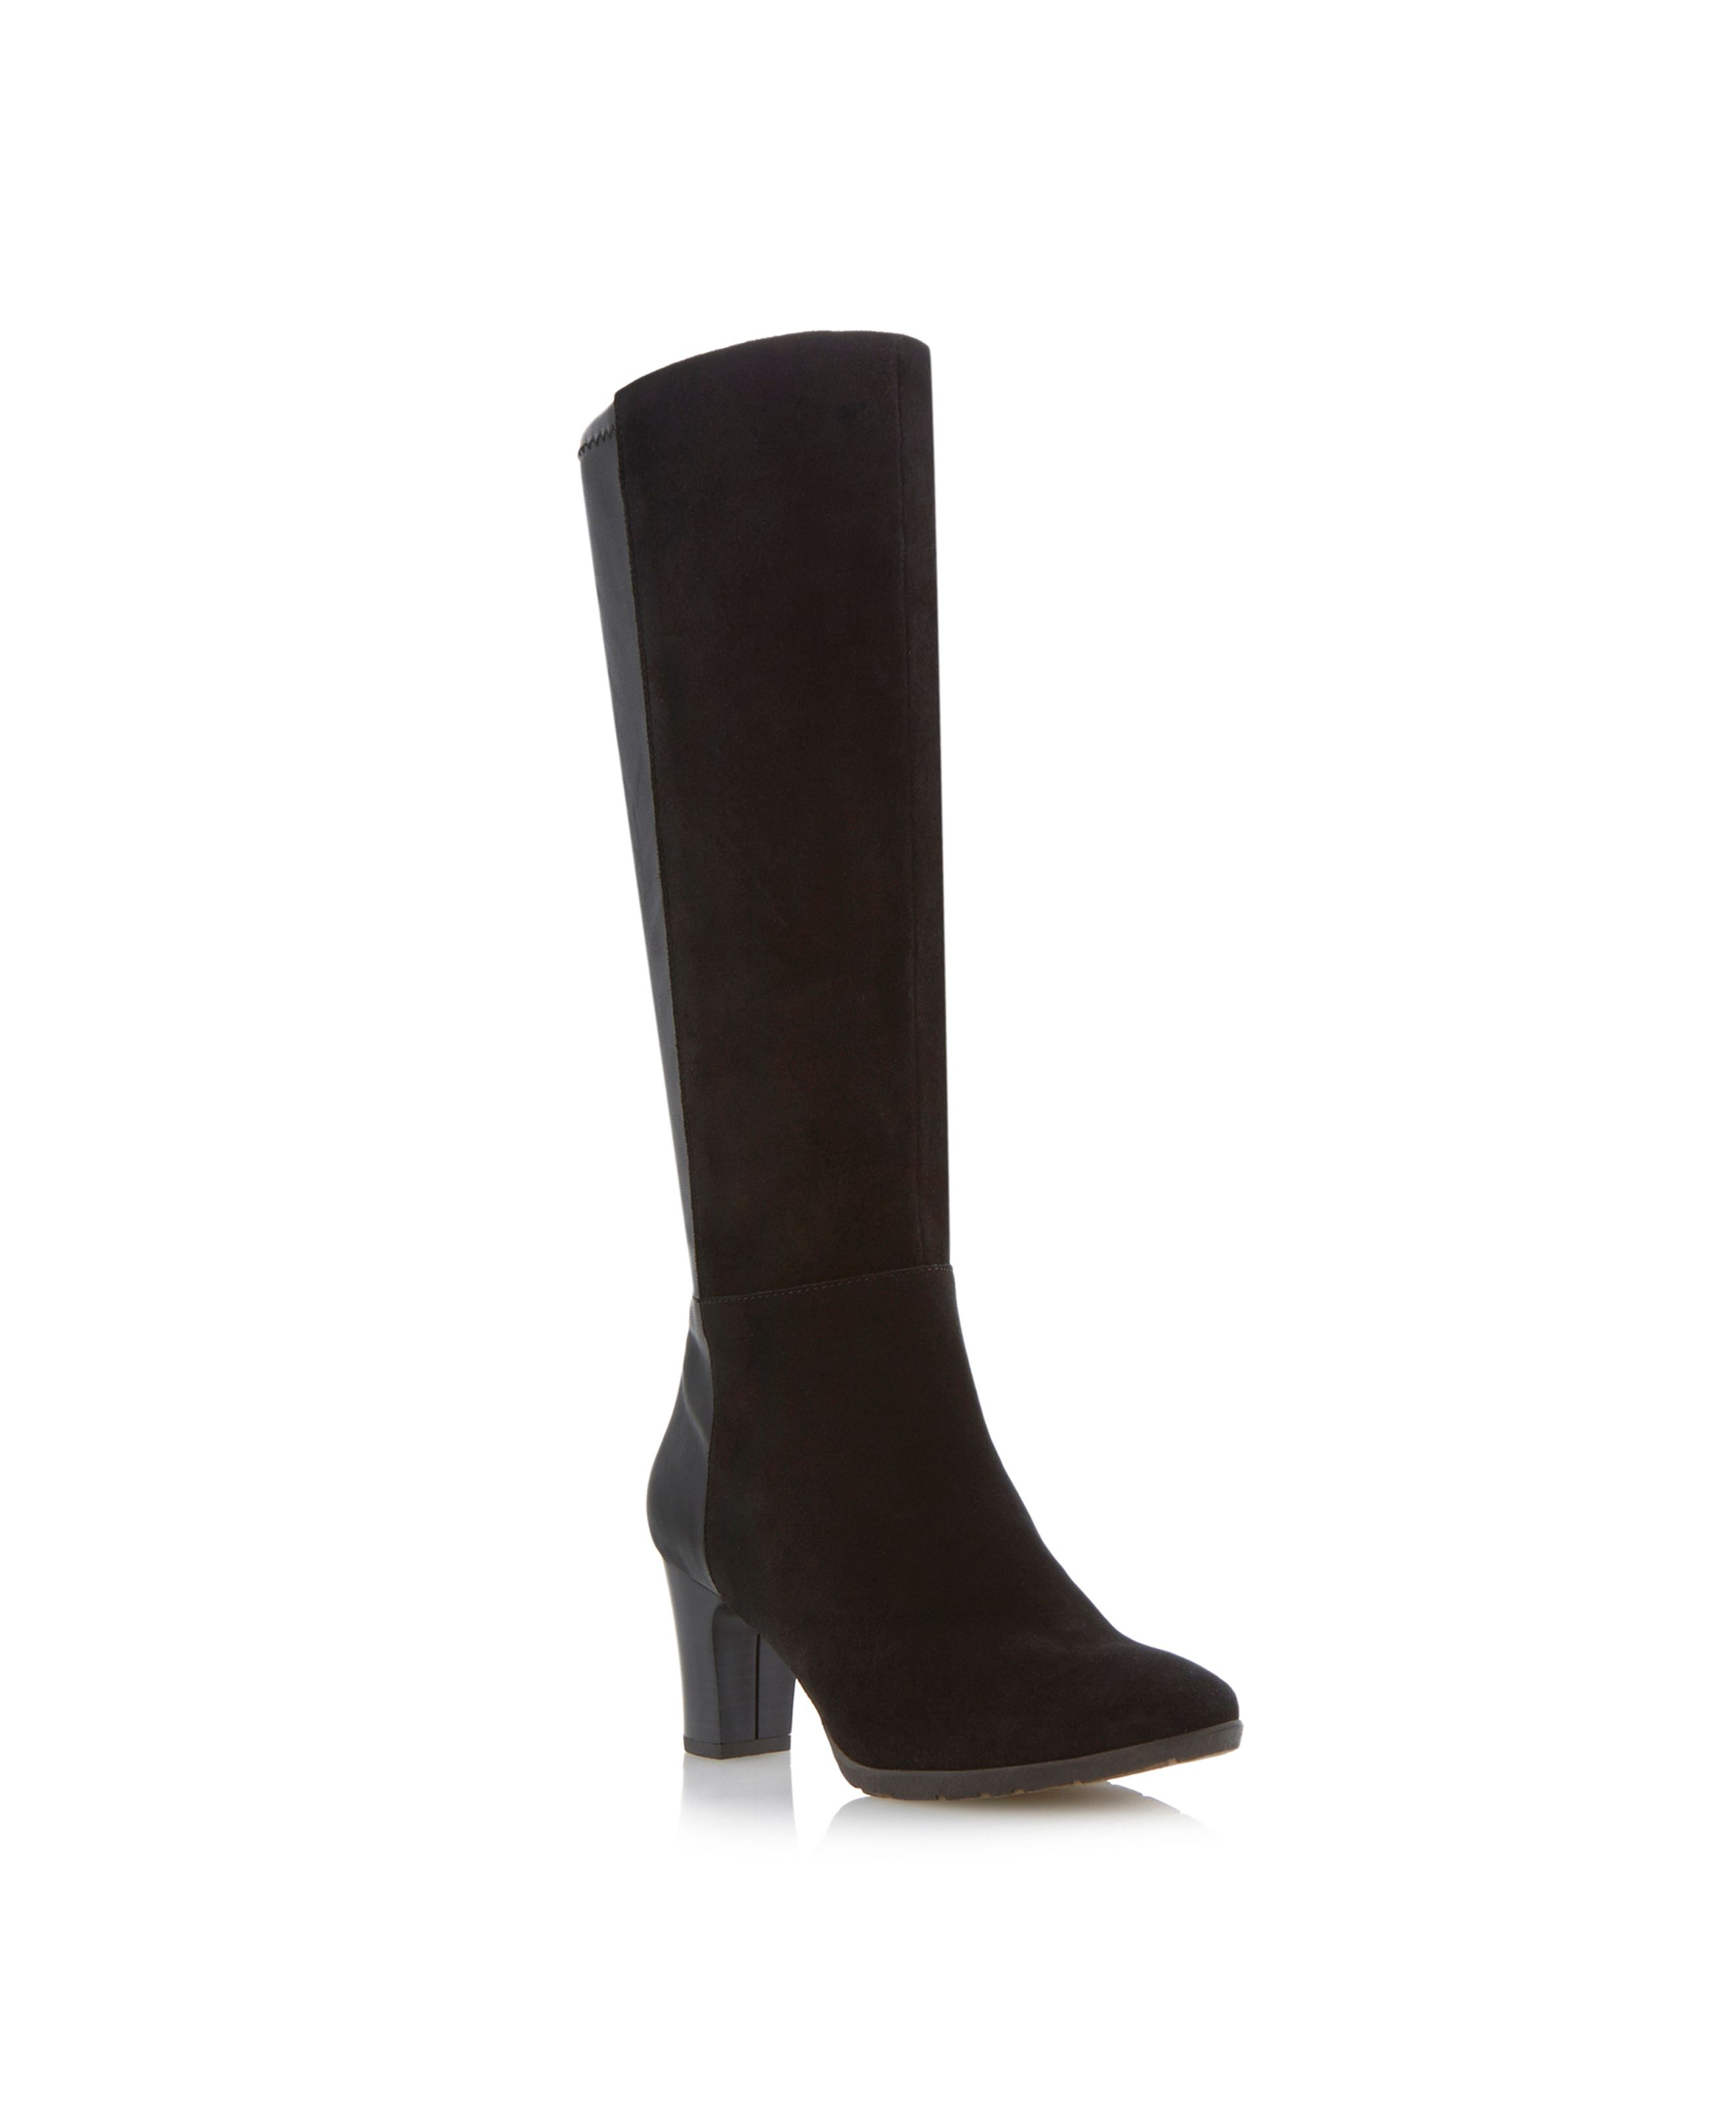 Talsa two tone high leg boots